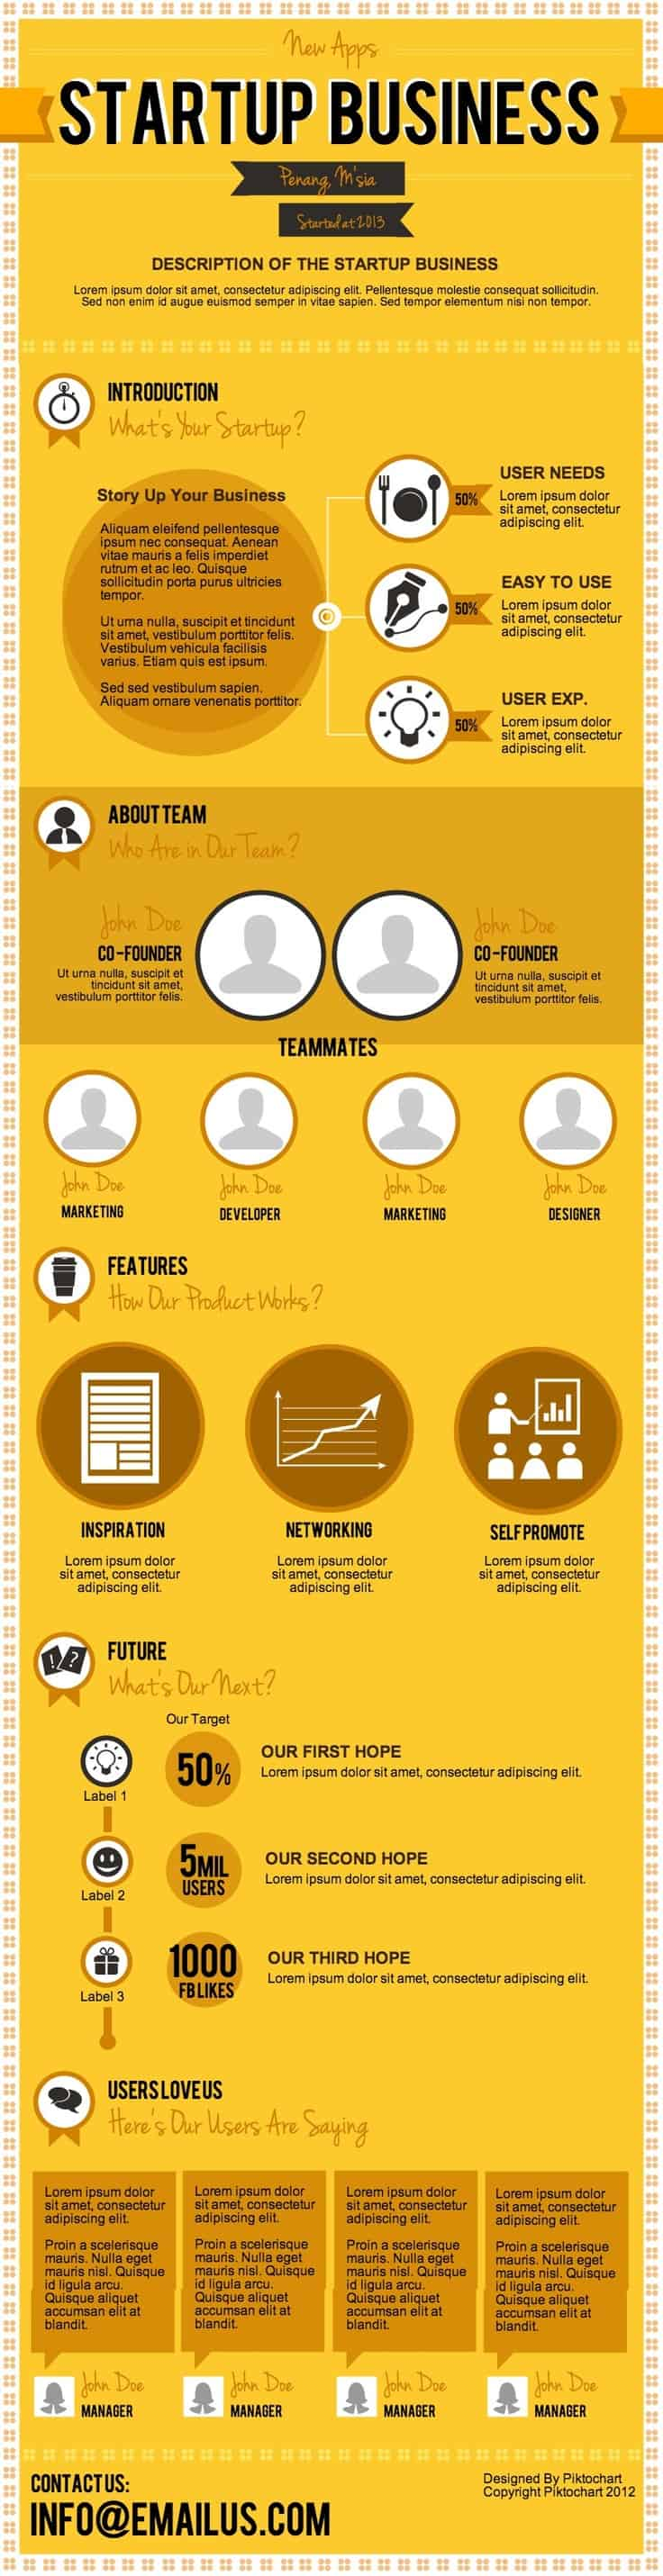 startup business infographic template